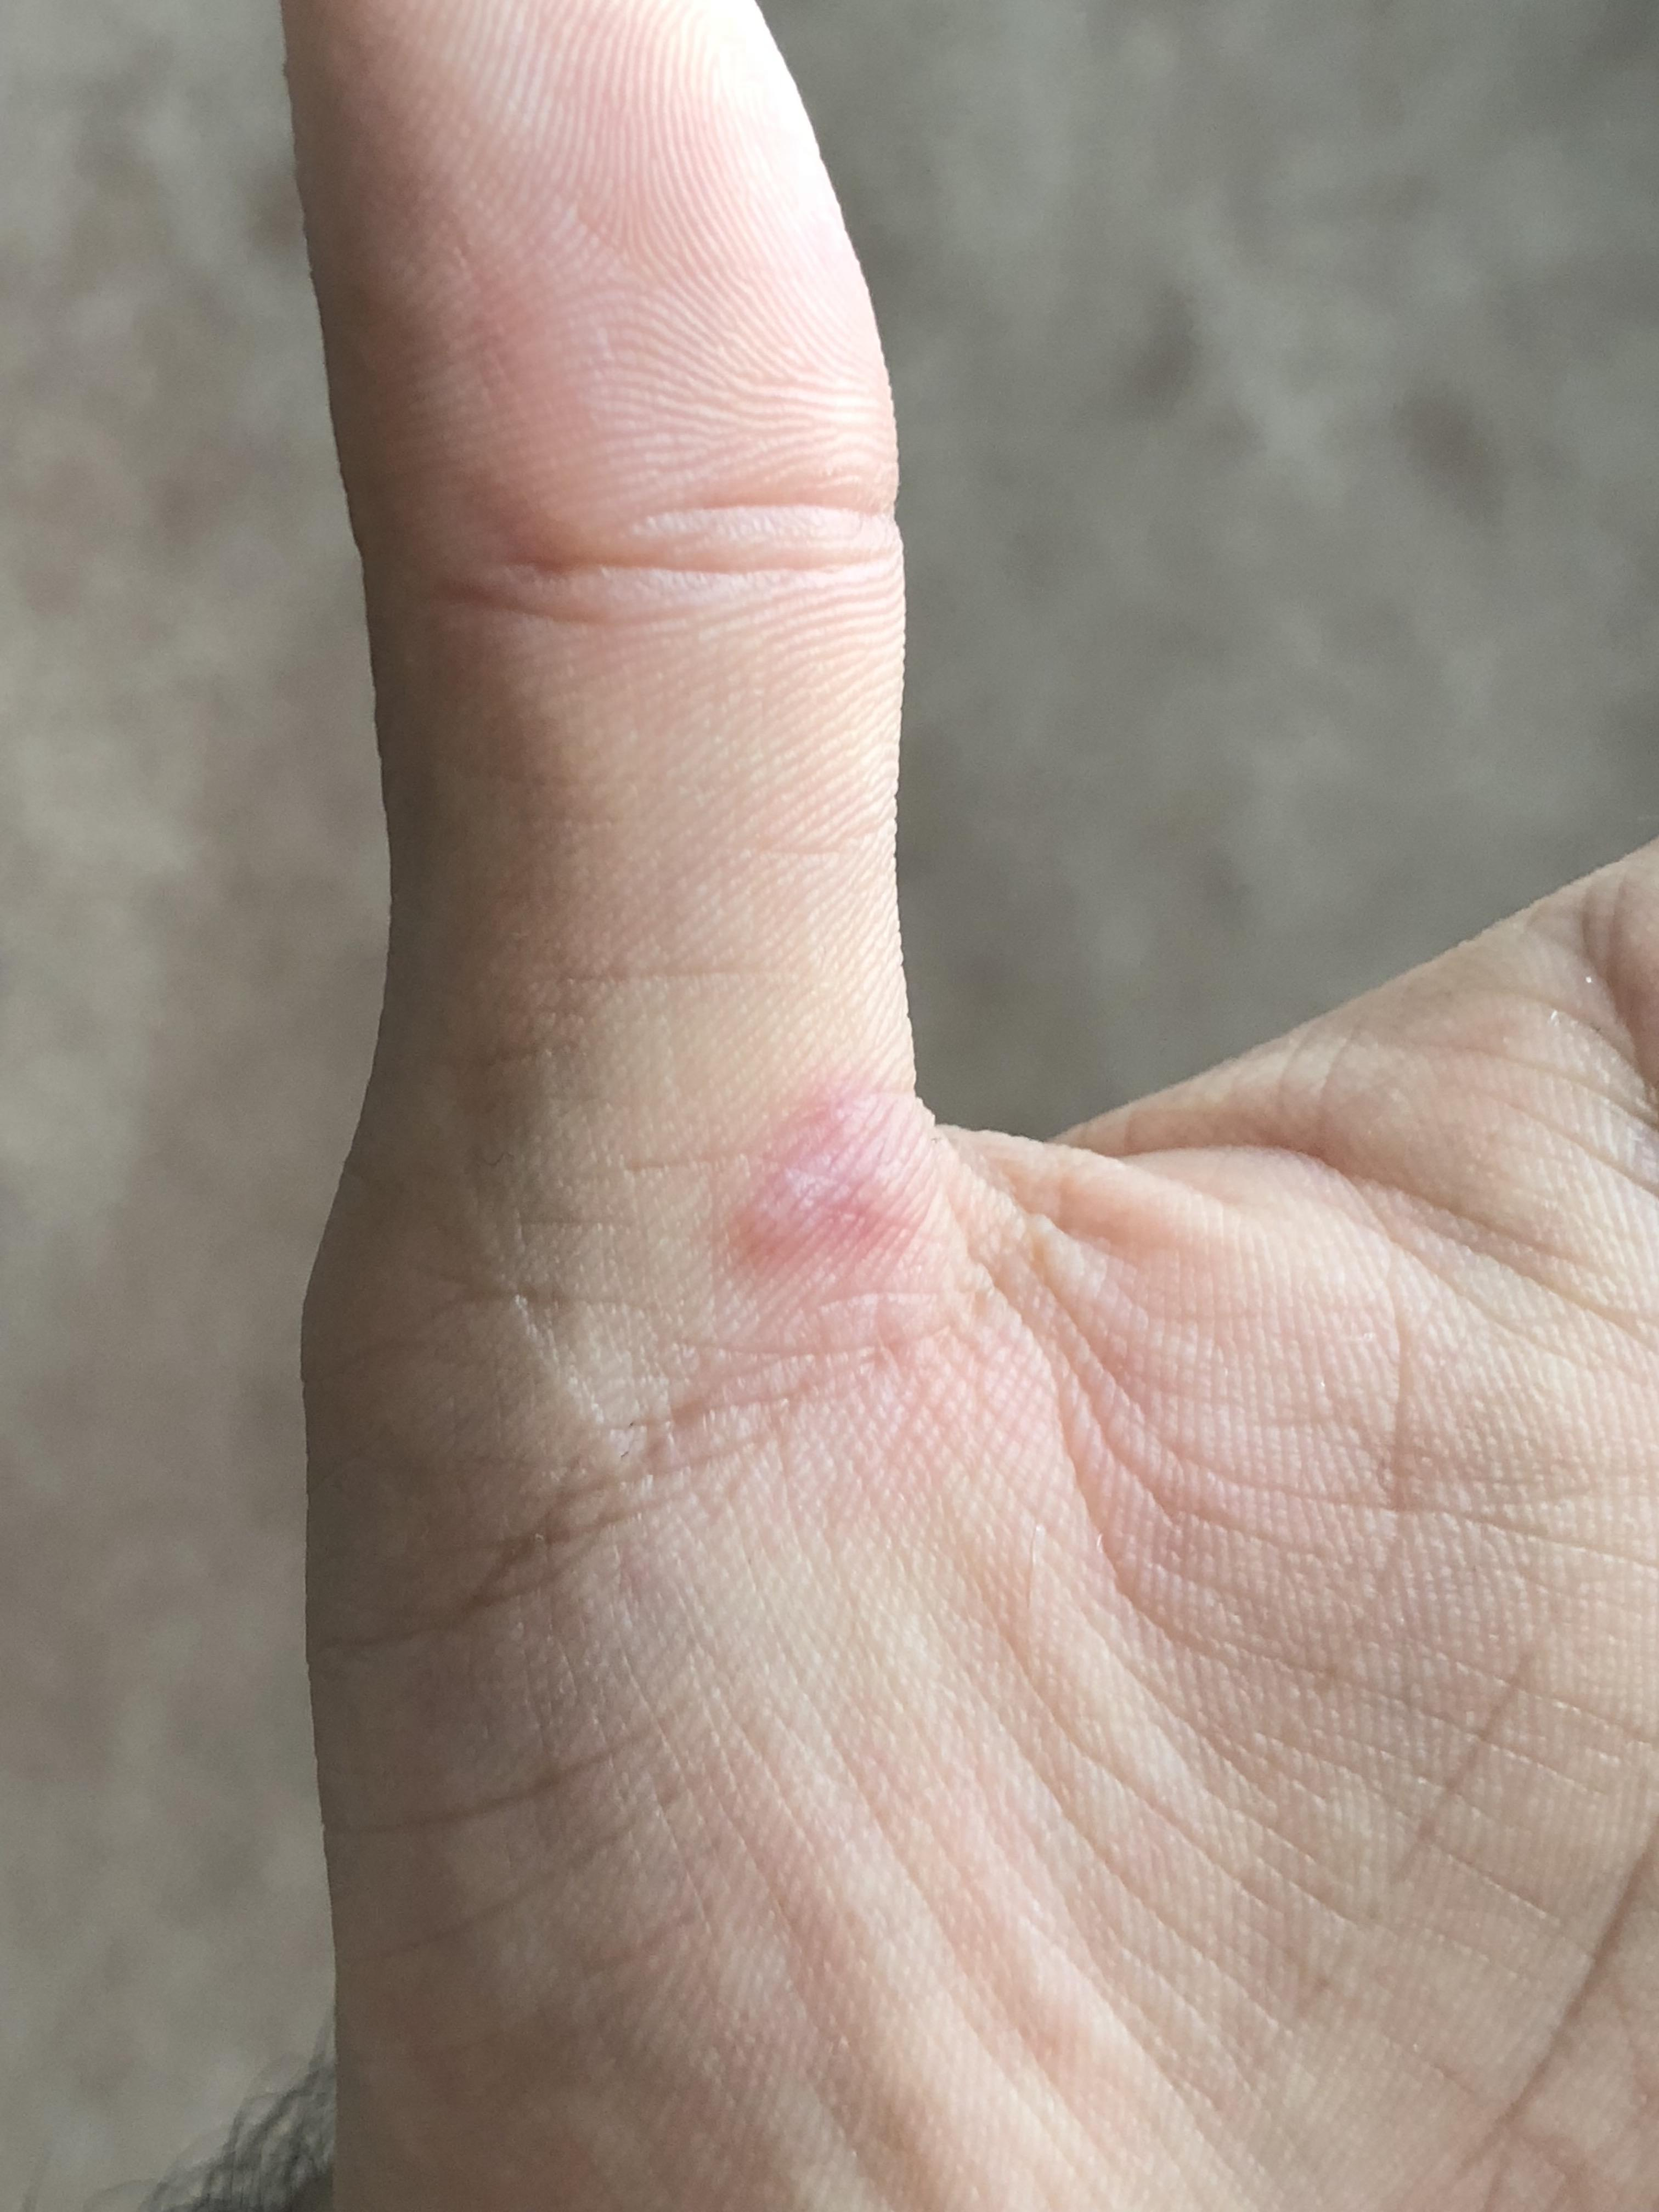 Do warts on hands itch